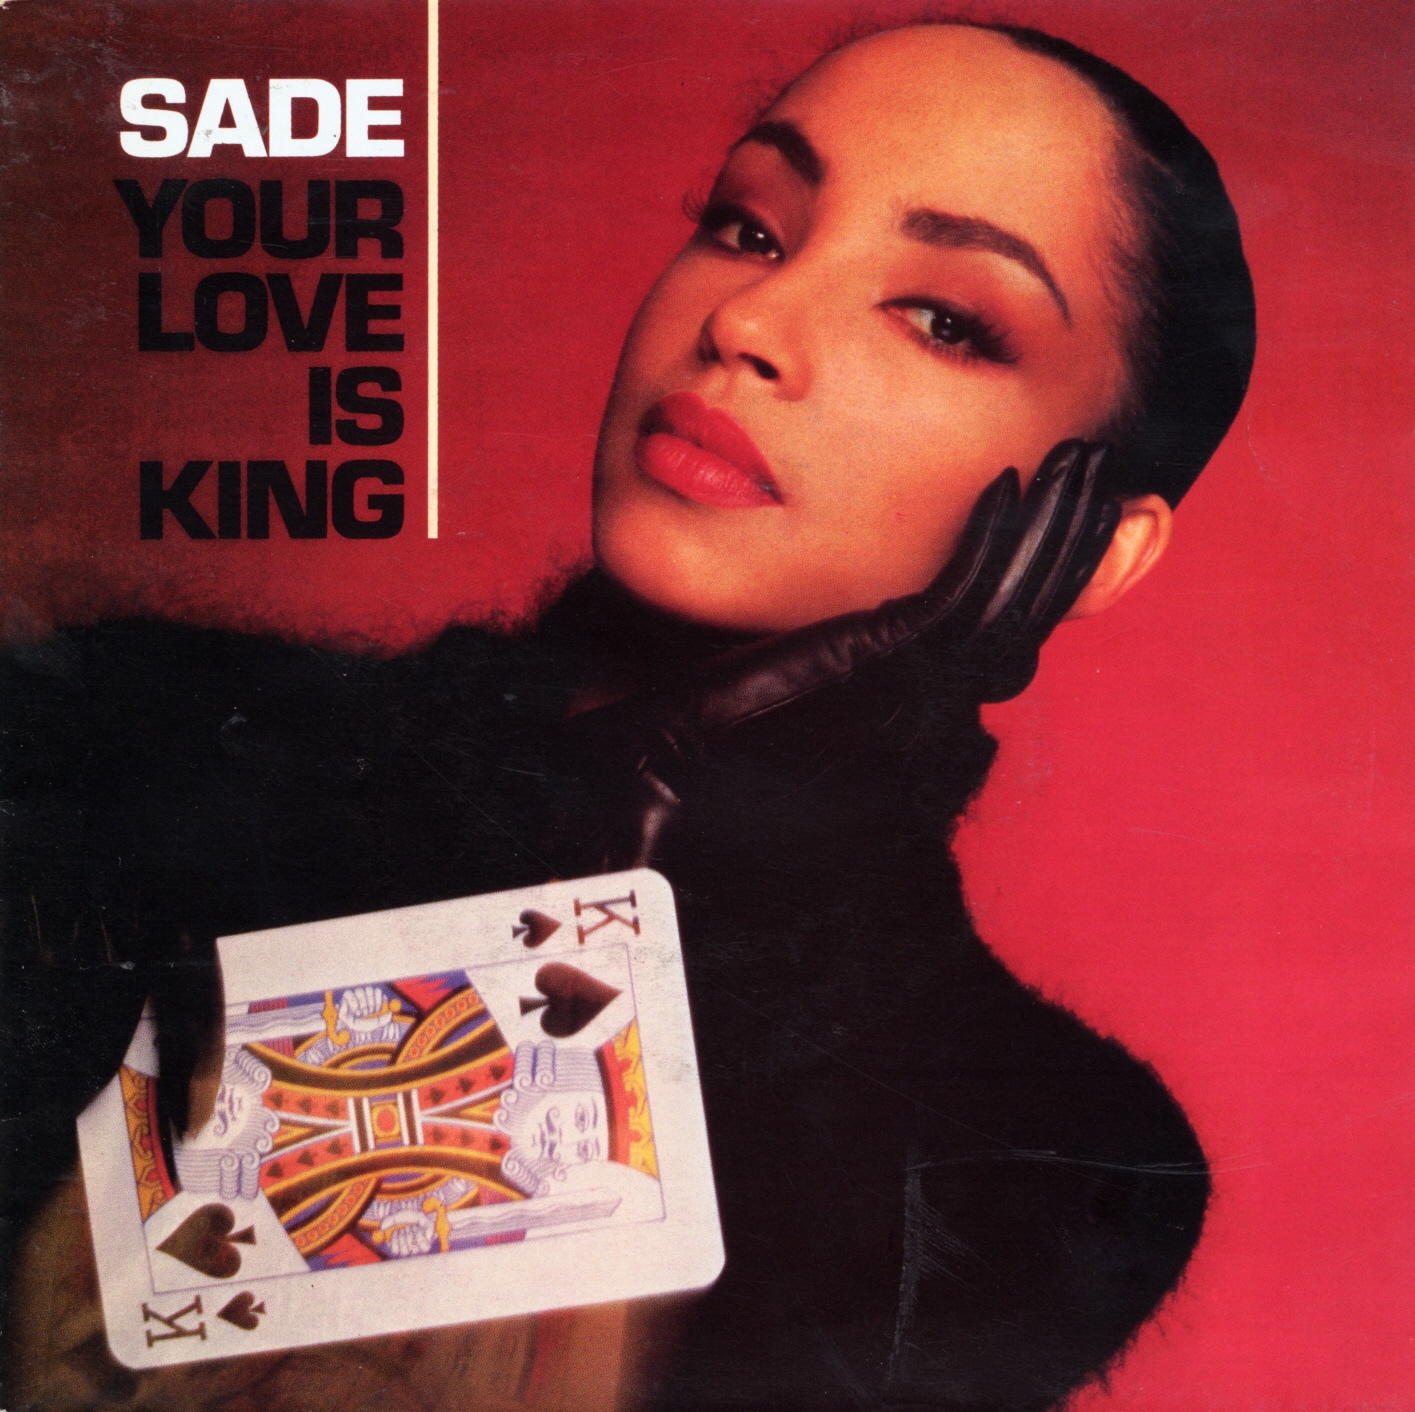 Cover: Your love is king, Sade